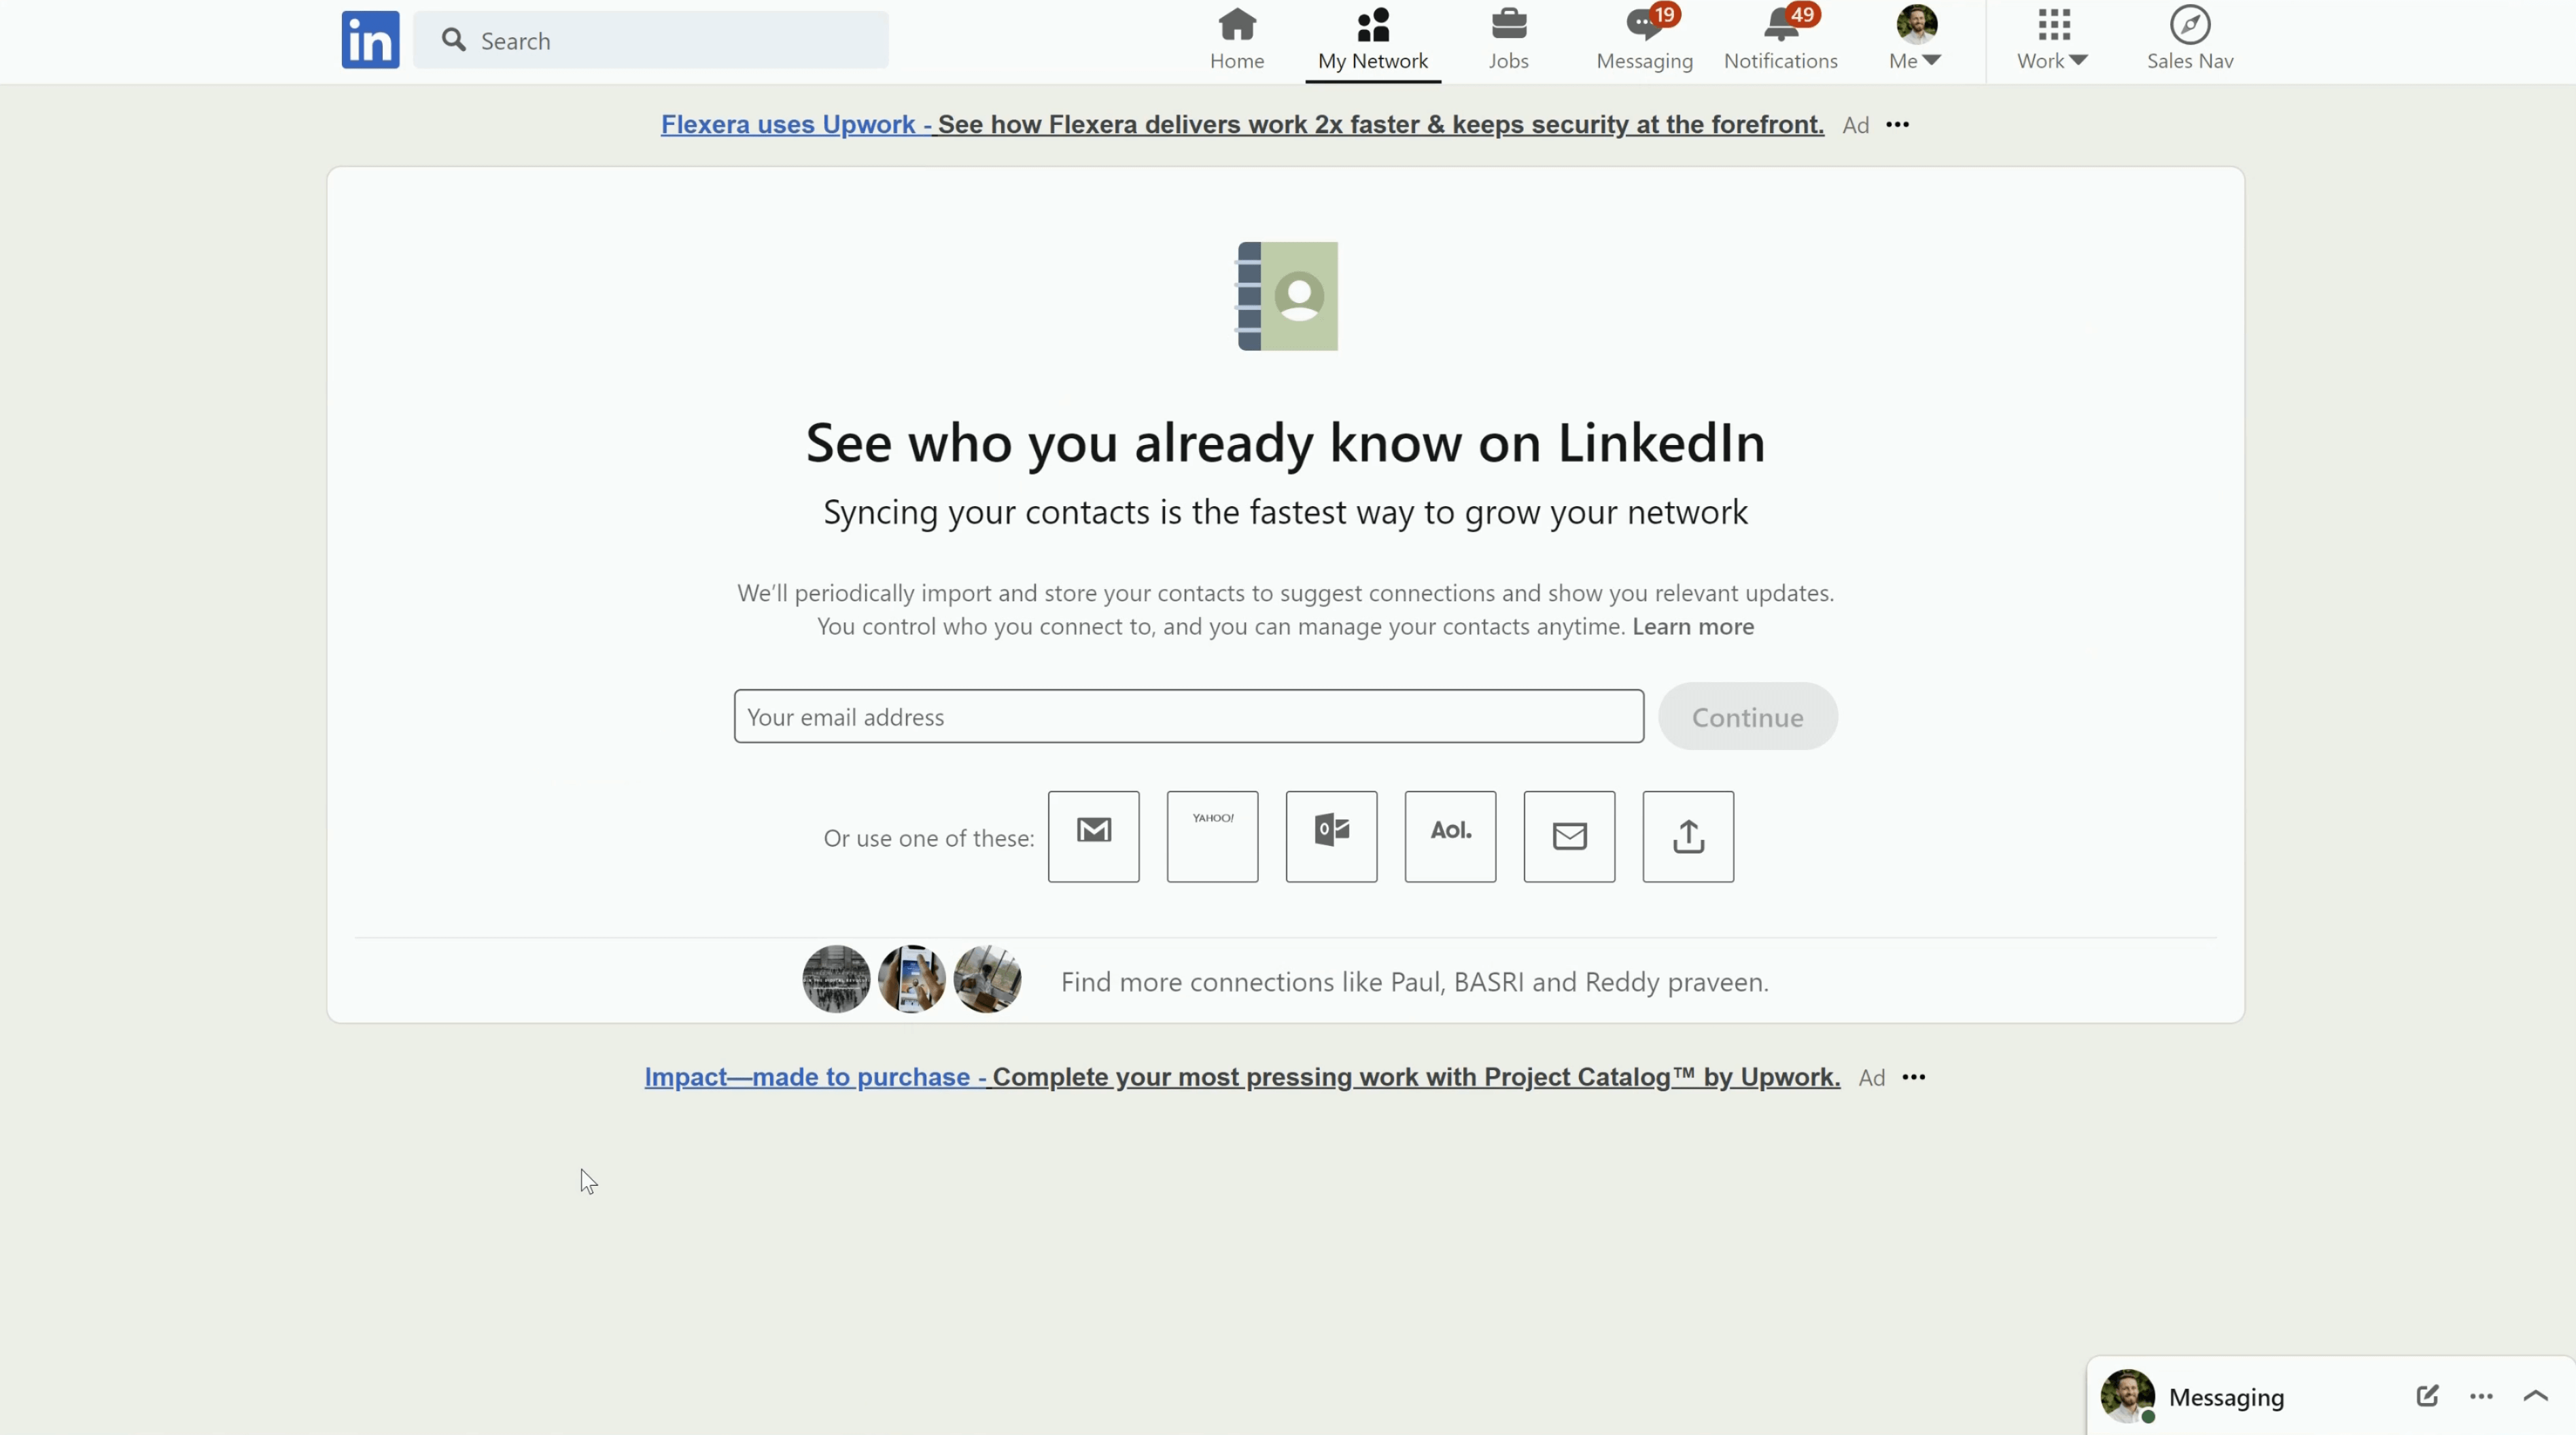 how-to-import-contacts-on-linkedin-1